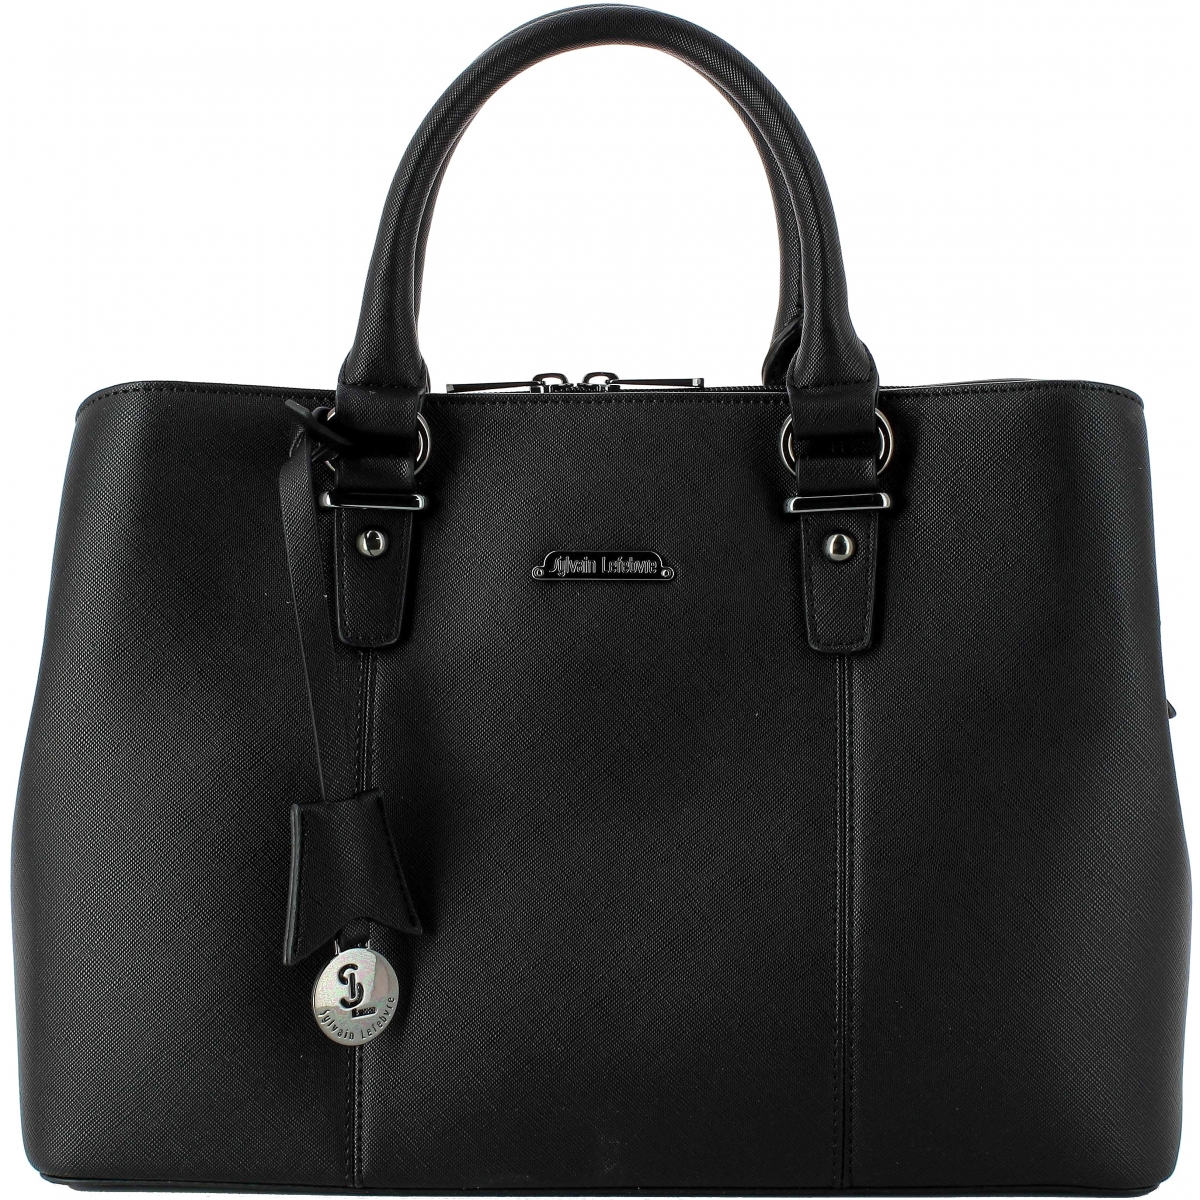 Sac main shopping sylvain lef bvre taille m sl645152 for Solde porte entree